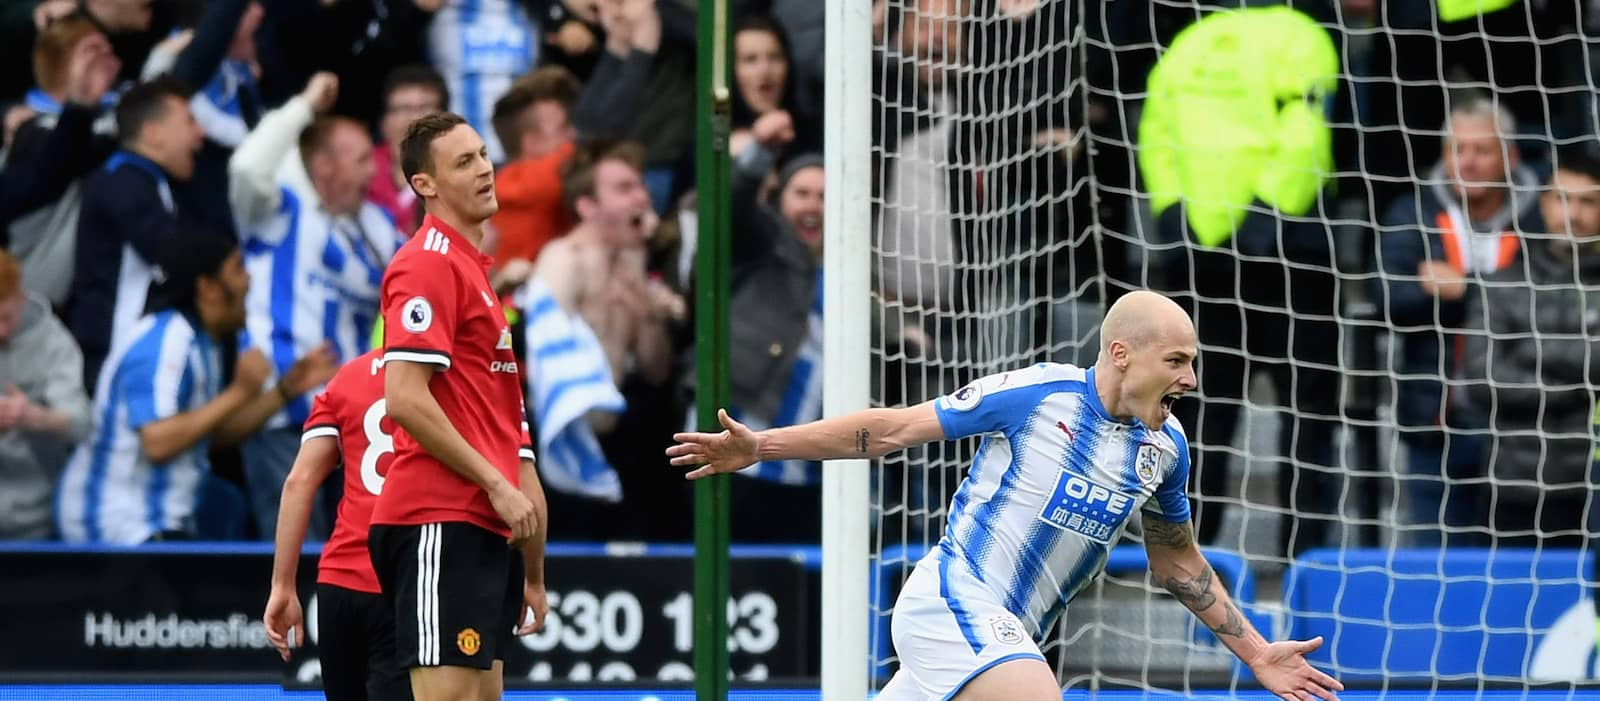 Manchester United players blasted by away fans after Huddersfield match